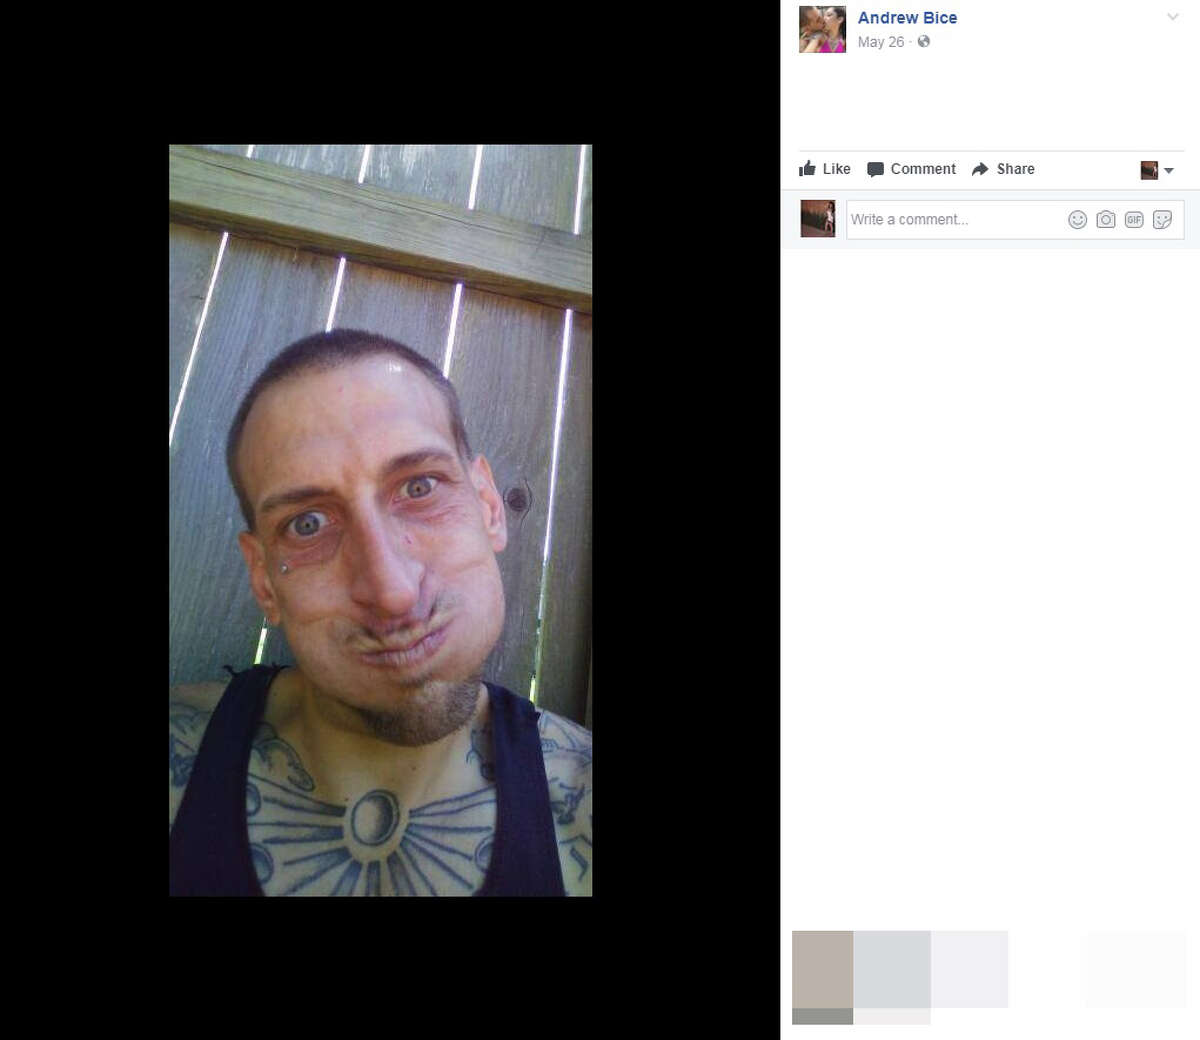 Facebook photos show the life of suspect Andrew Bice before he shot two SAPD officers, one of which was Officer Miguel Moreno, who succumbed to his injuries on June 30, 2017. Bice took his own life on June 29, 2017 following the shootout.